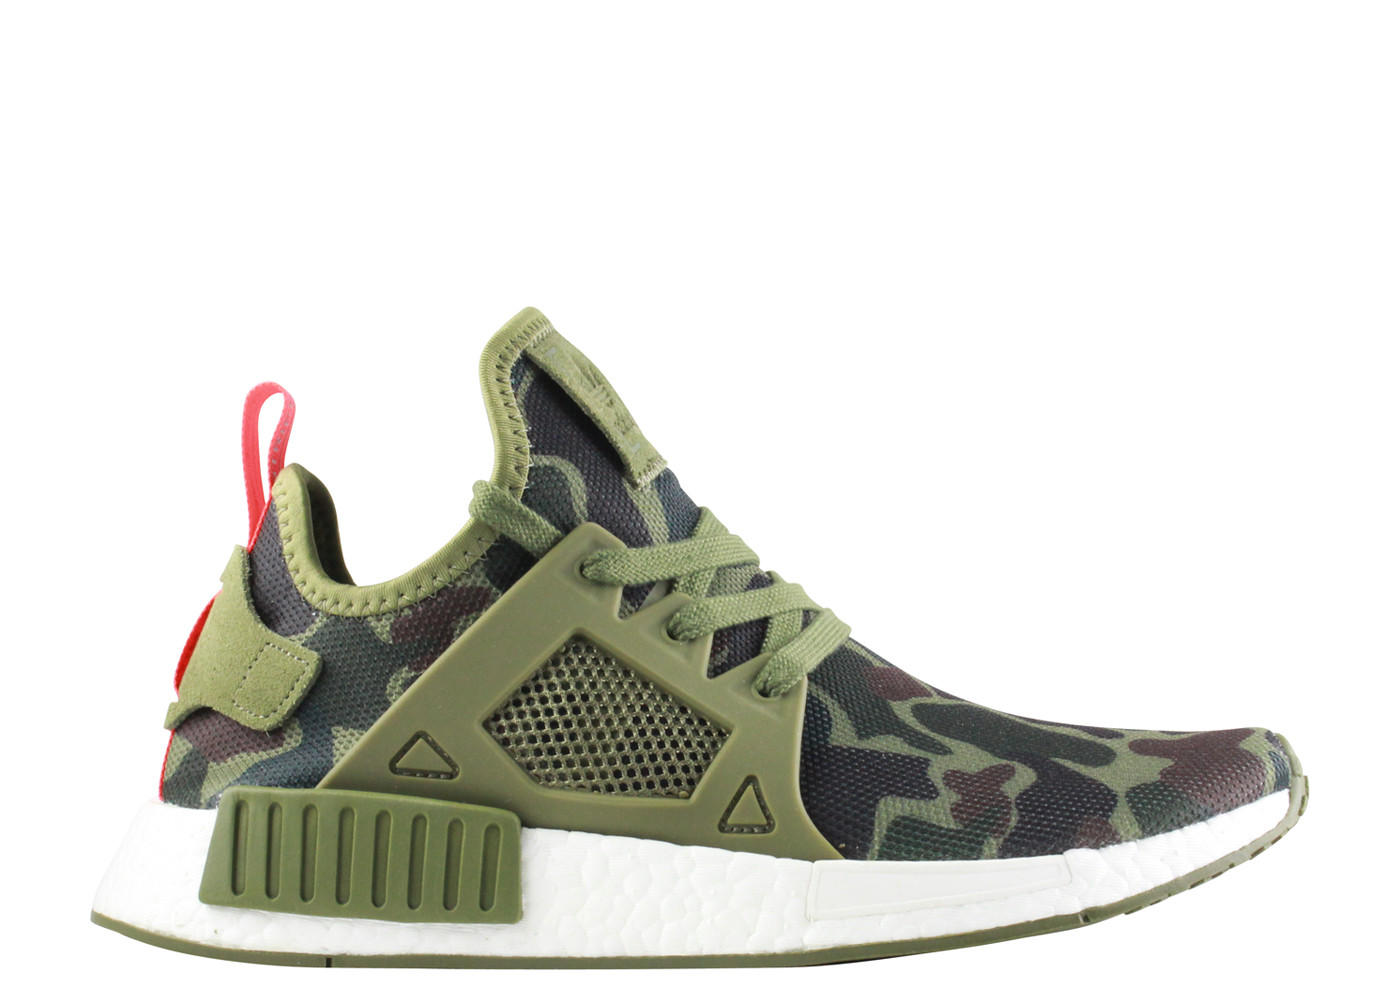 Adidas Men s NMD XR1 Duck Camo Olive from KickzStore  2505aeb40